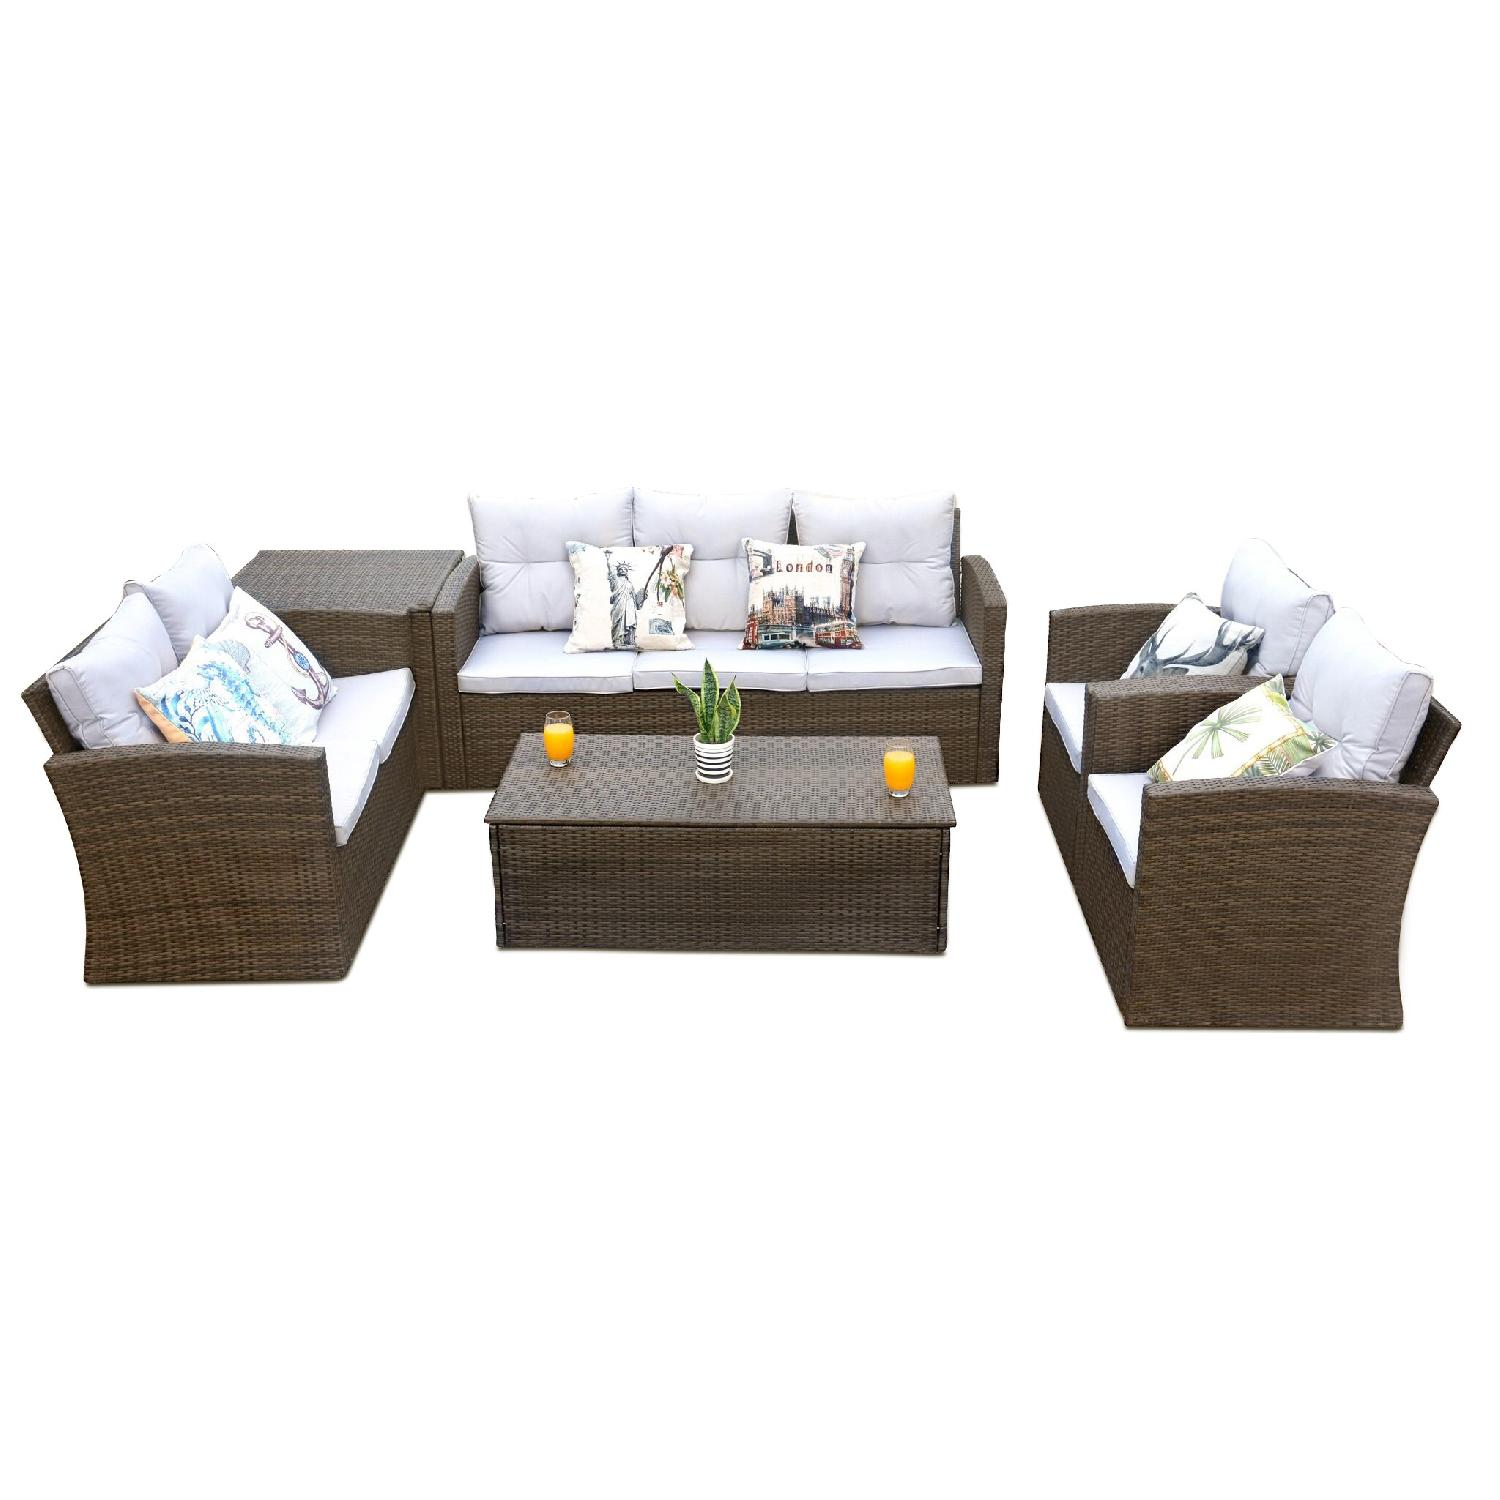 Edmond 6 Piece Outdoor Set w/ Storage